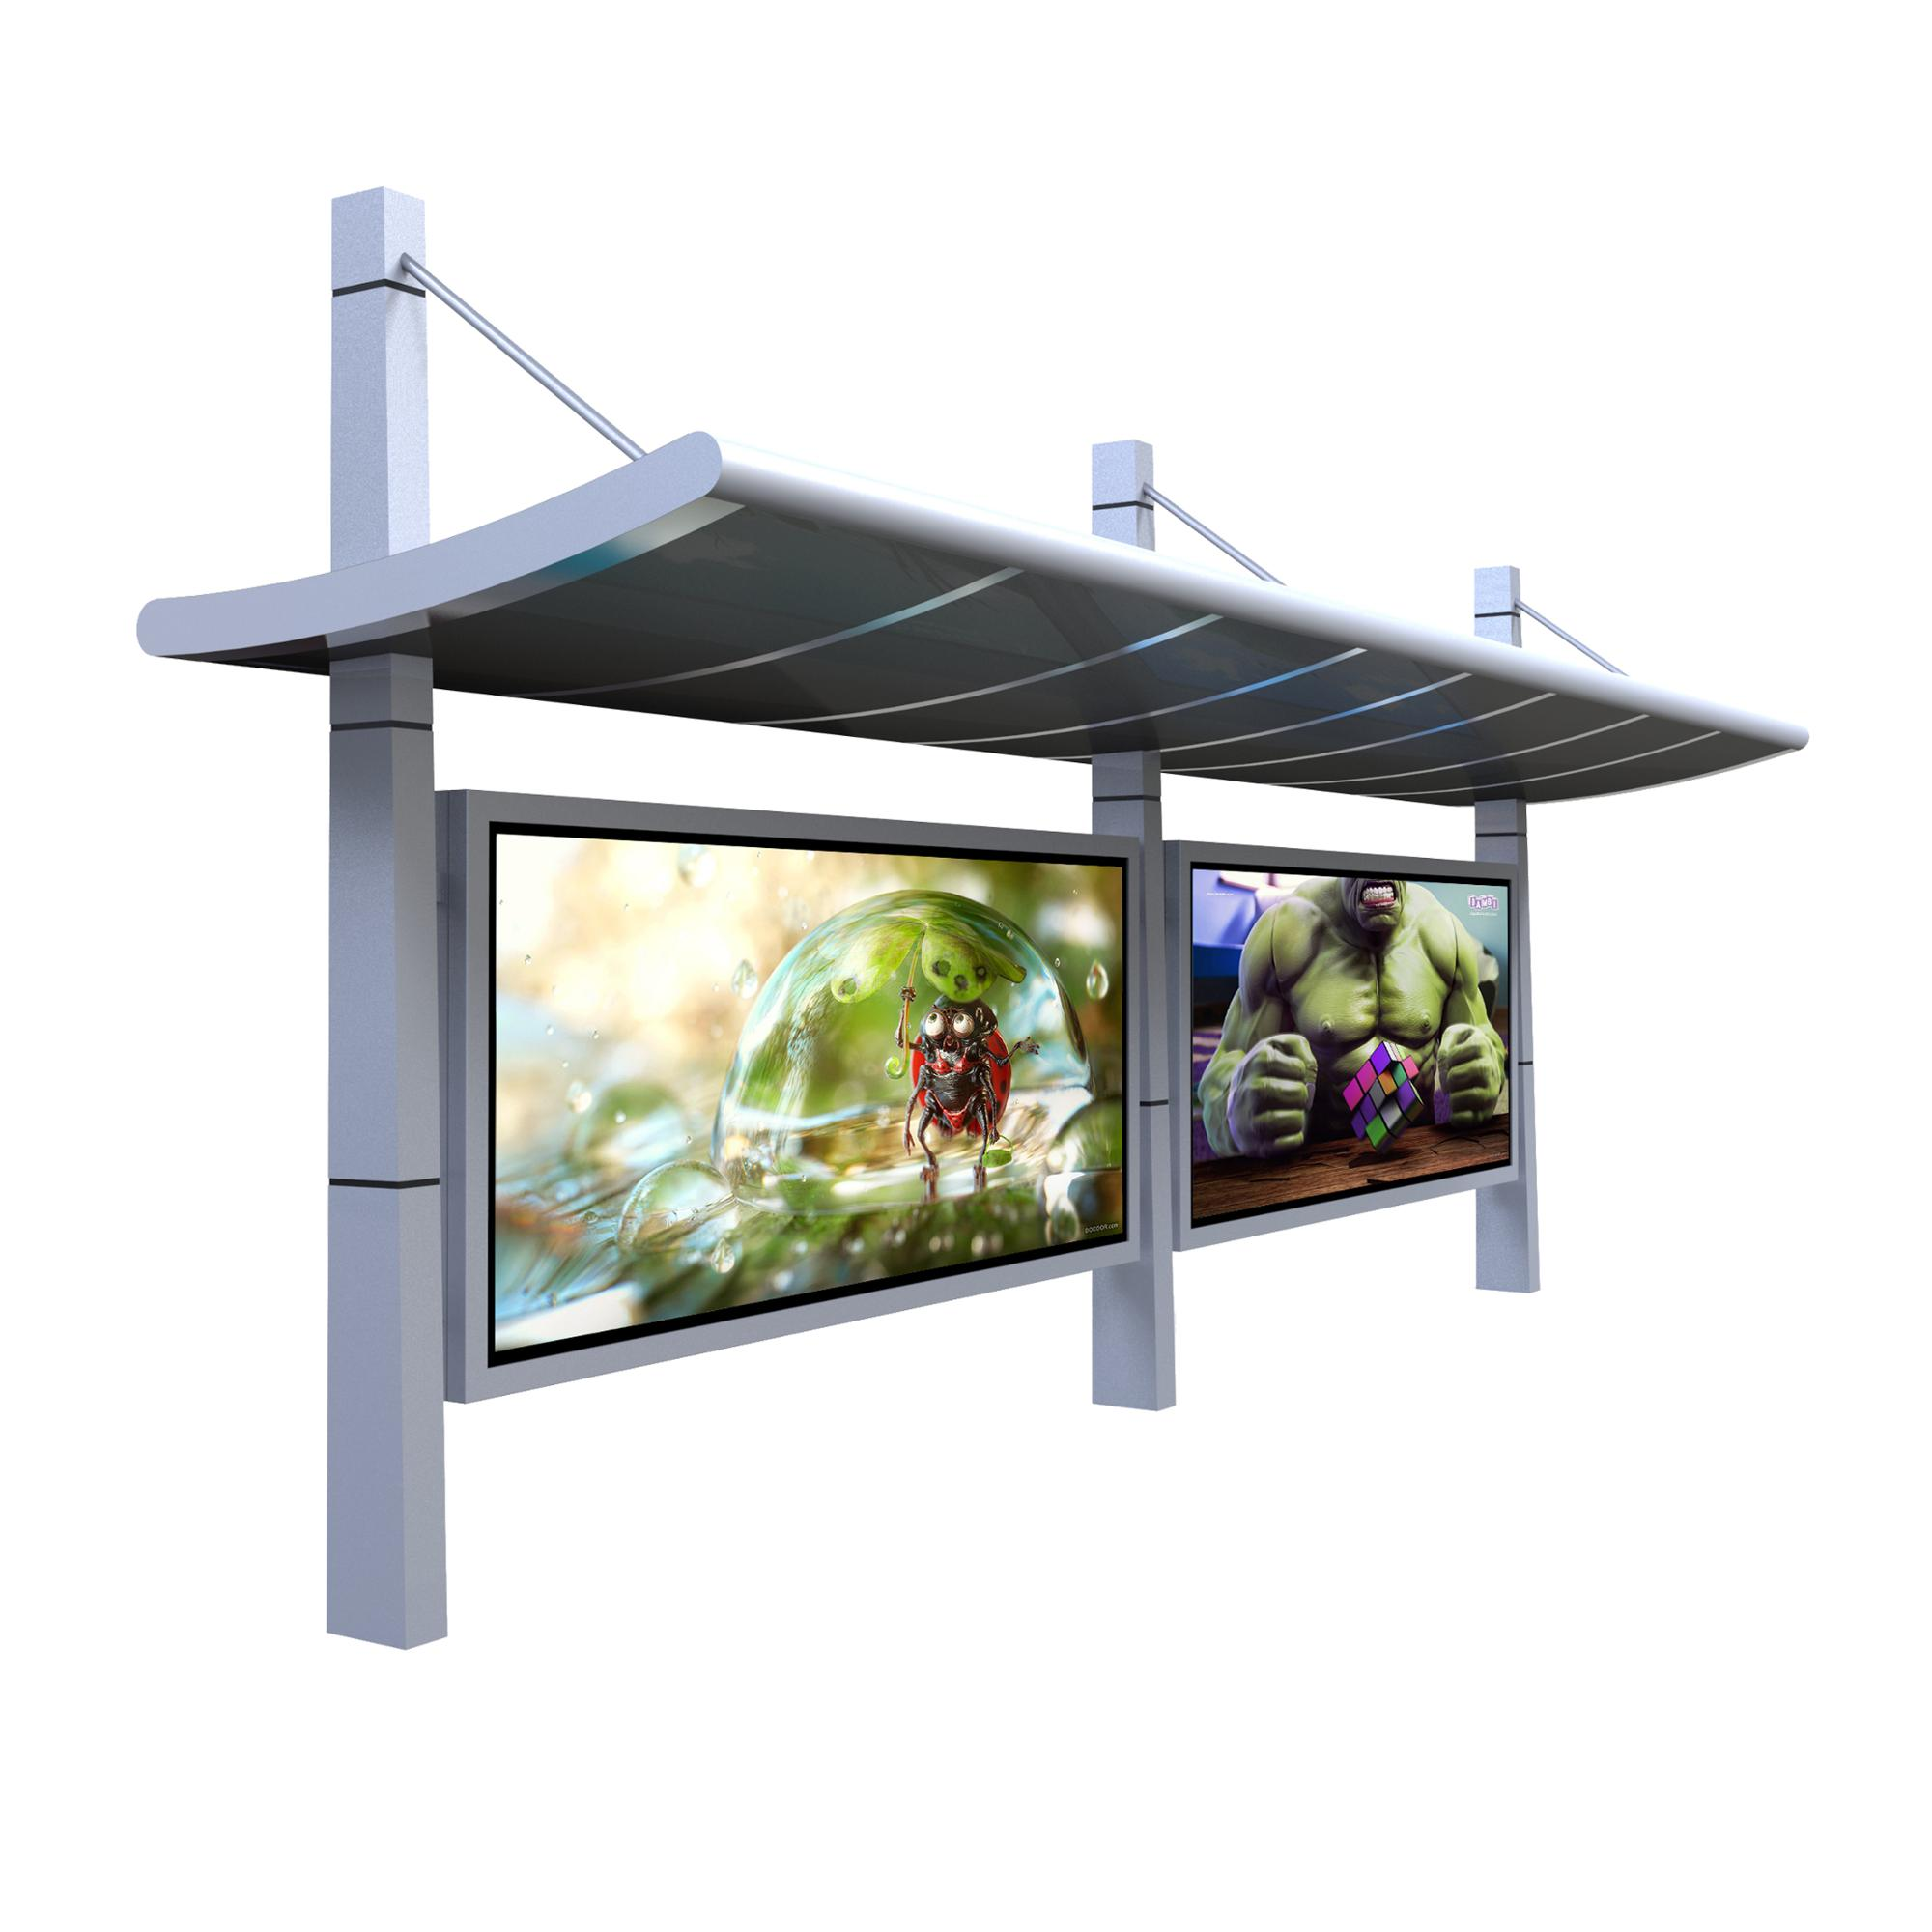 product-High-quality outdoor bus shelter-YEROO-img-3